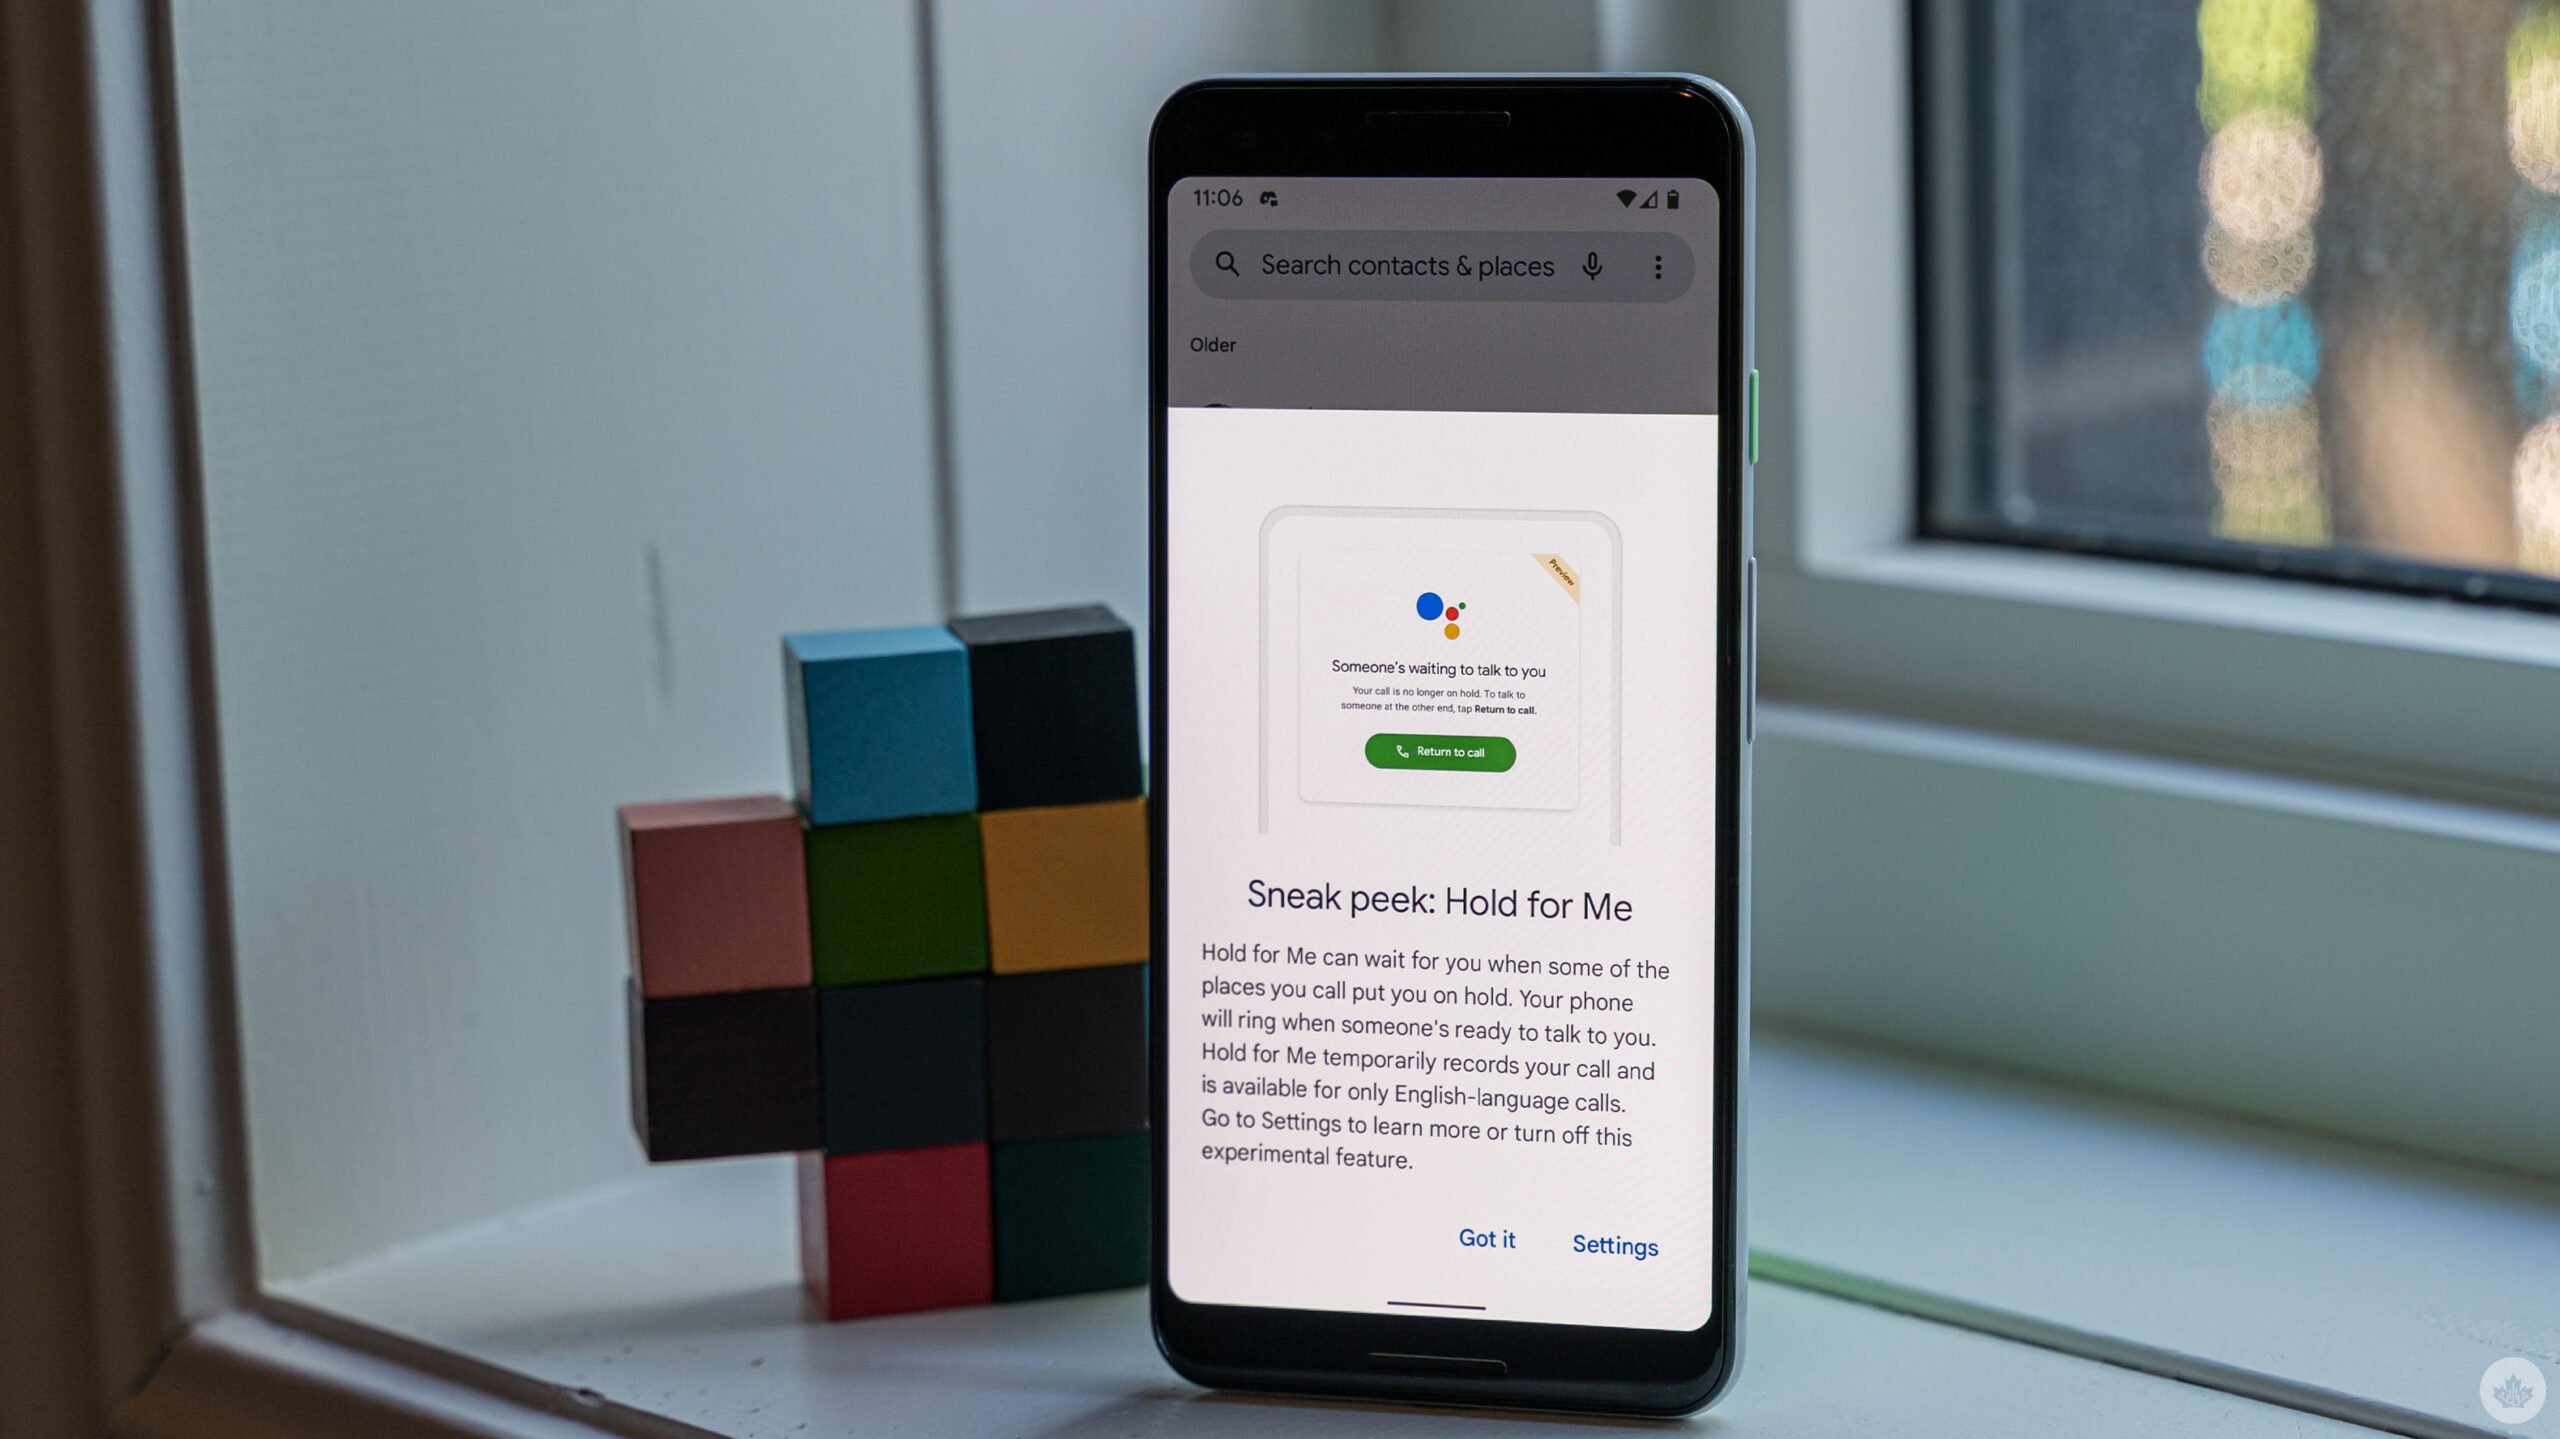 Hold for Me on a Pixel 3